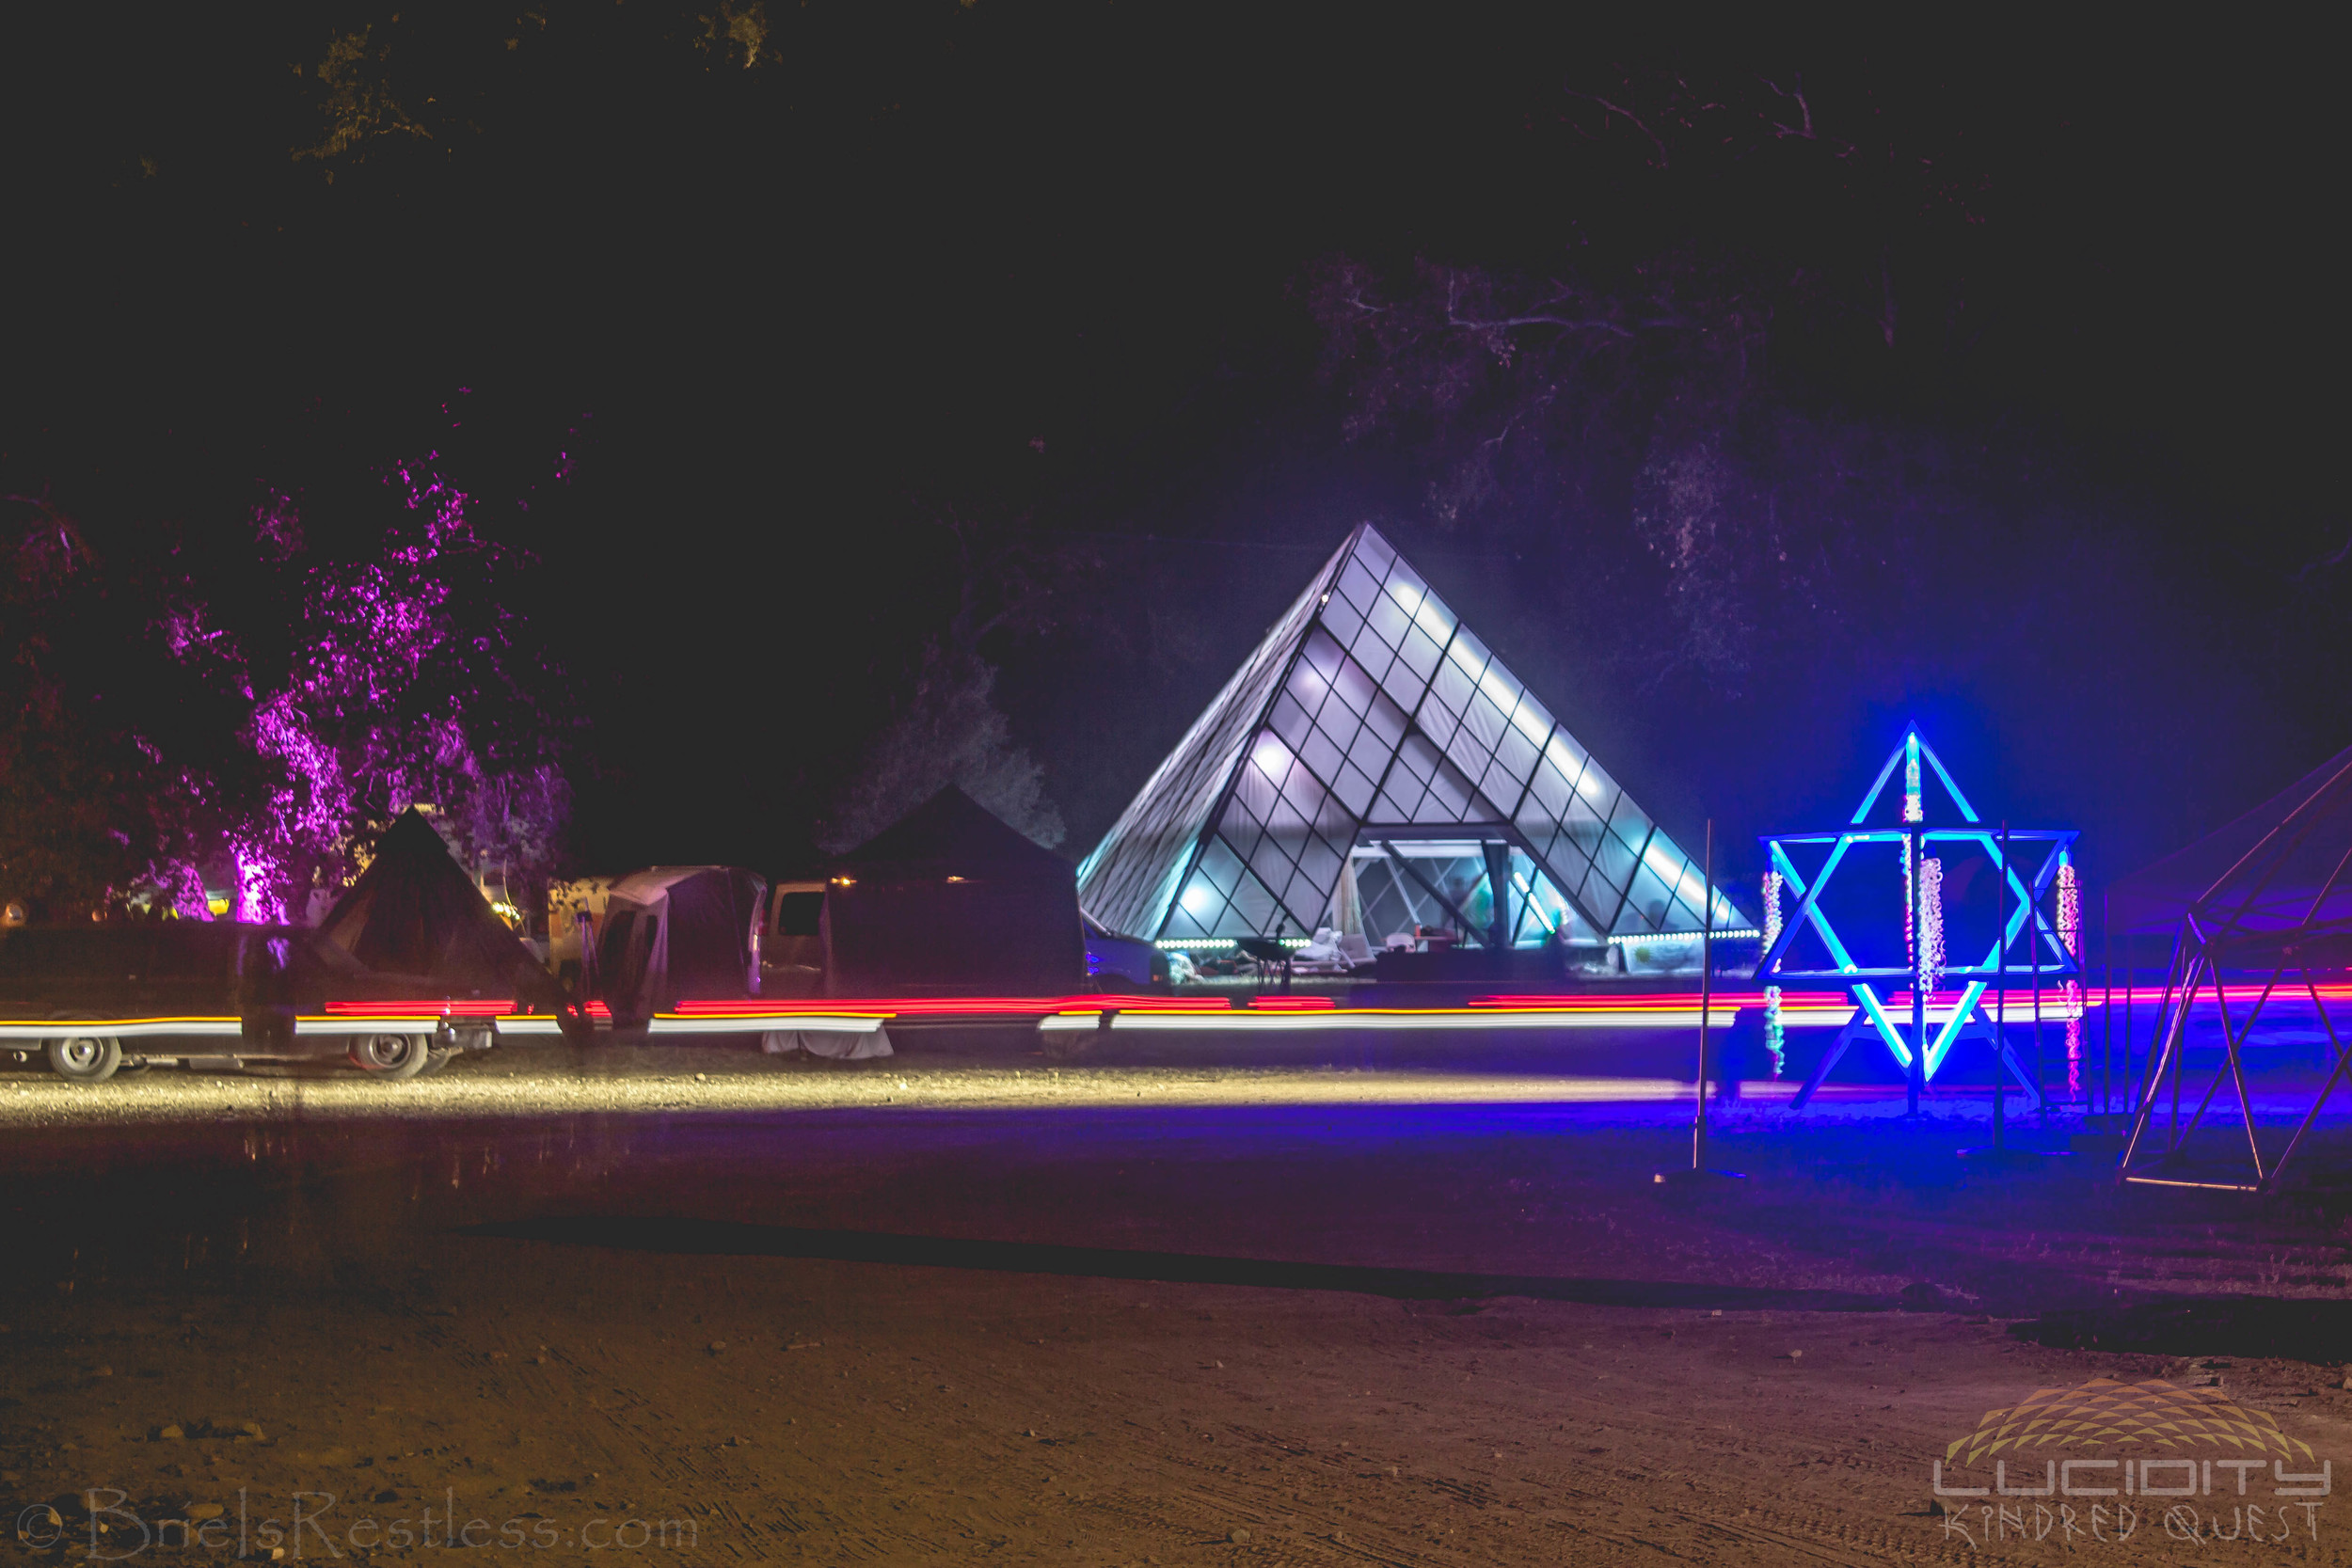 Temple - Long Exposure - Luciditiy - Kindred Quest - Build - April 2015 (1 of 1)-2 (1 of 1).jpg